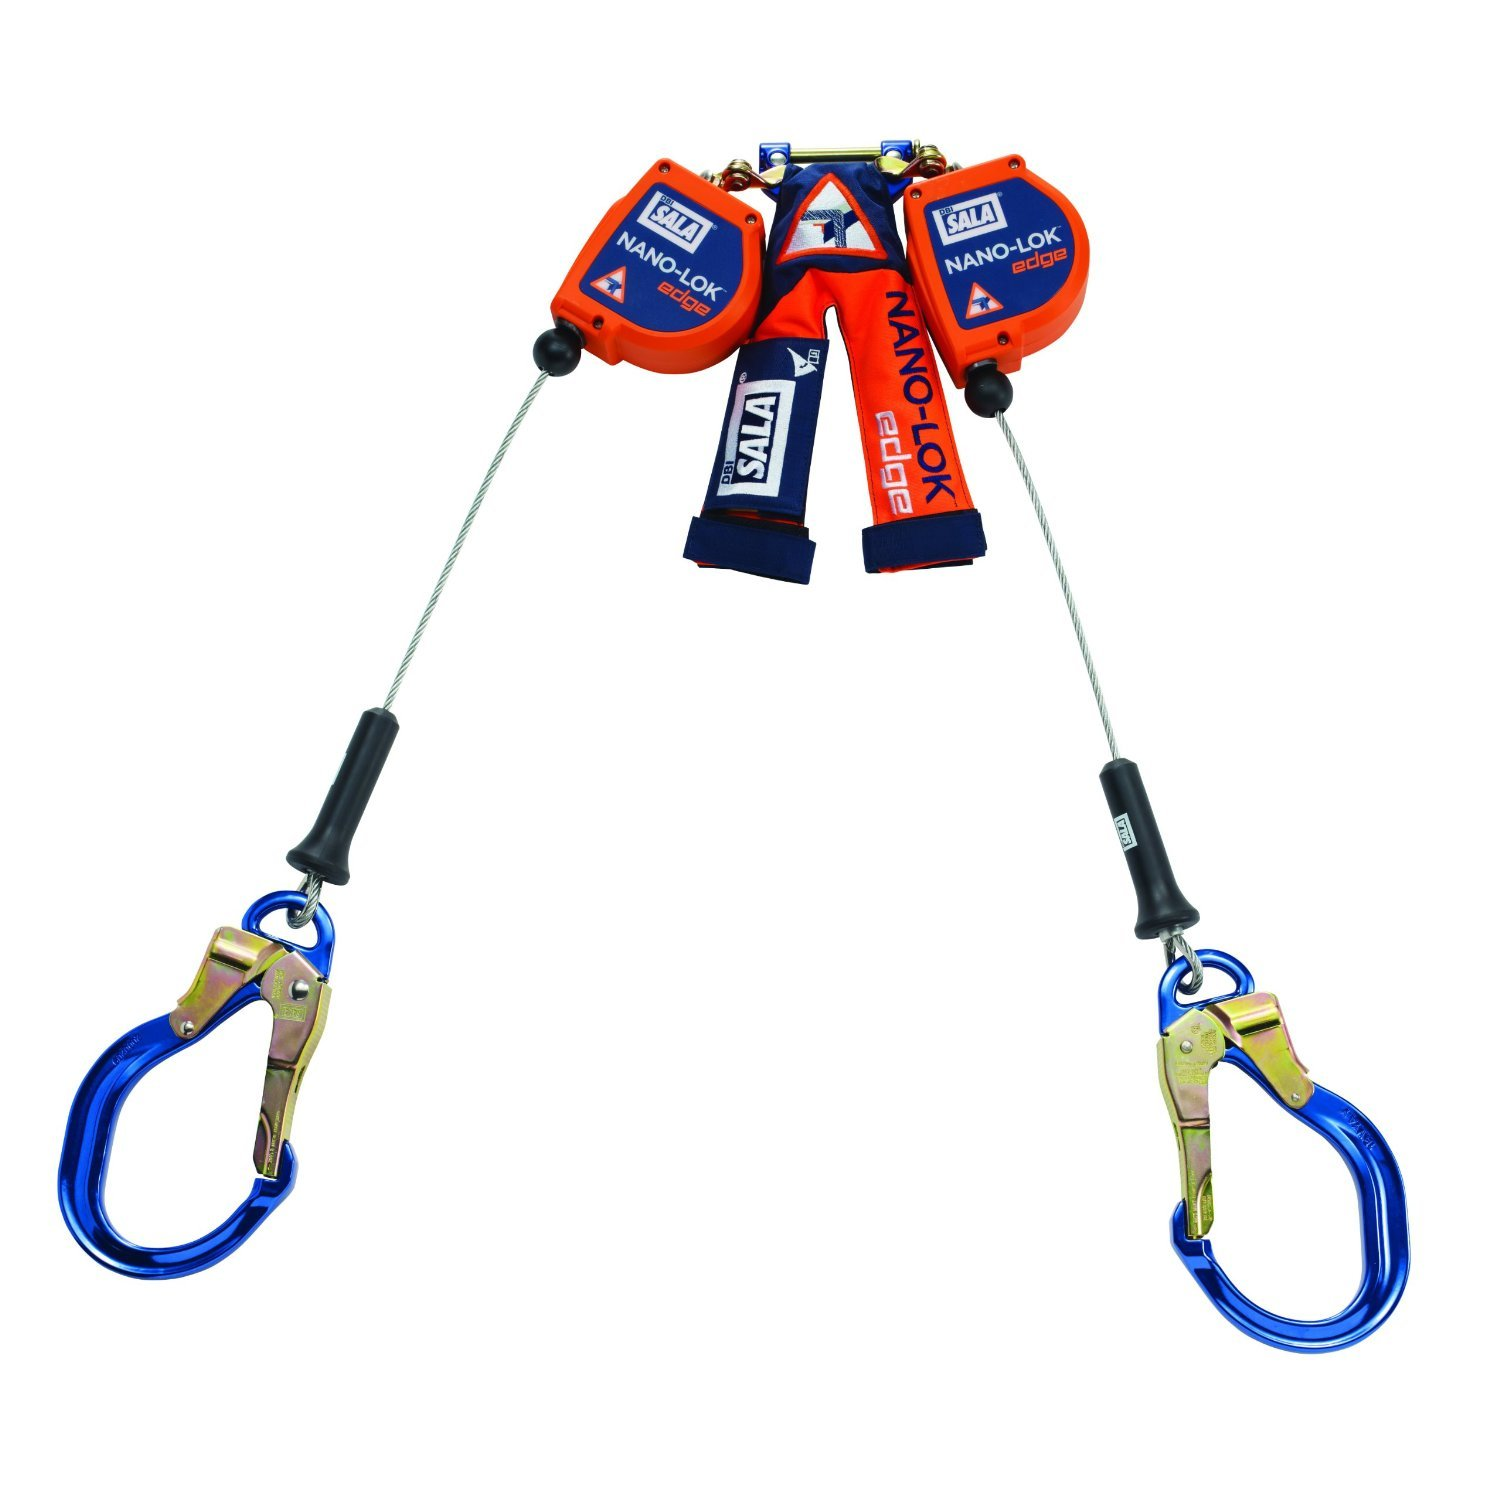 DBI/SALA 3500231 8' Nano-Lok Edge Twin Leg Self-Retracting 3/16'' Galvanized Cable Lifeline With Aluminum Rebar Lock Nose Hooks at Leg Ends, English, 141.128 fl. oz., Plastic, 1'' x 96'' x 0.19''